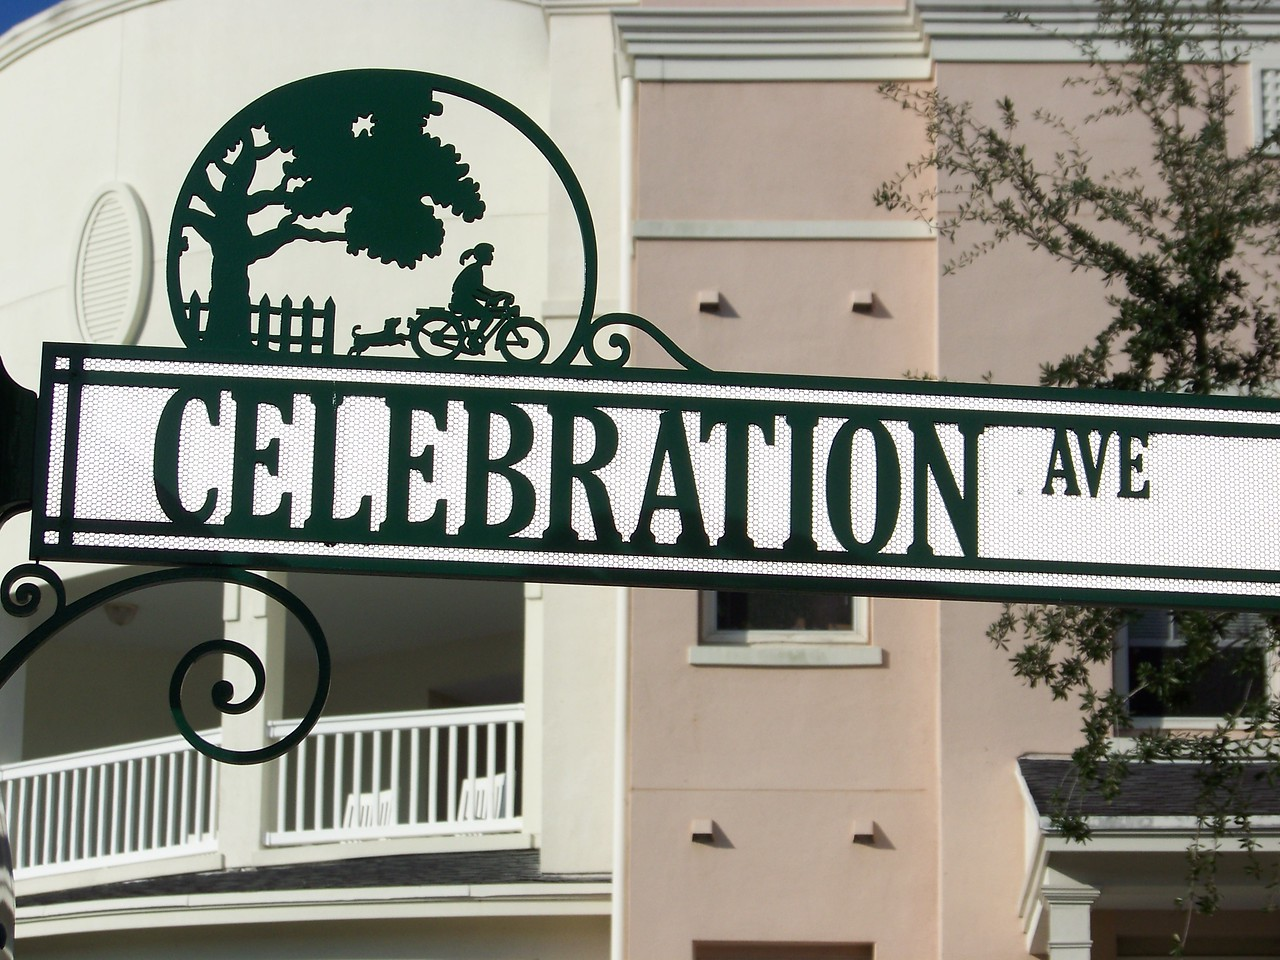 "A decorative street sign in Celebration, Florida's town center.  One of Disney's design goals here was to foster a friendly, small-town feeling among the residents.  From what I saw, I'd say they were successful! Now let's jump back onto Disney property for a look at where we stayed, the <b><a href=""http://triesch.smugmug.com/WaltDisneyWorld/WDW-2011-in-9-parts/1-Arrival-and-Pop-Century/19983886_Bxj27r"">Pop Century Resort.</a></b>"